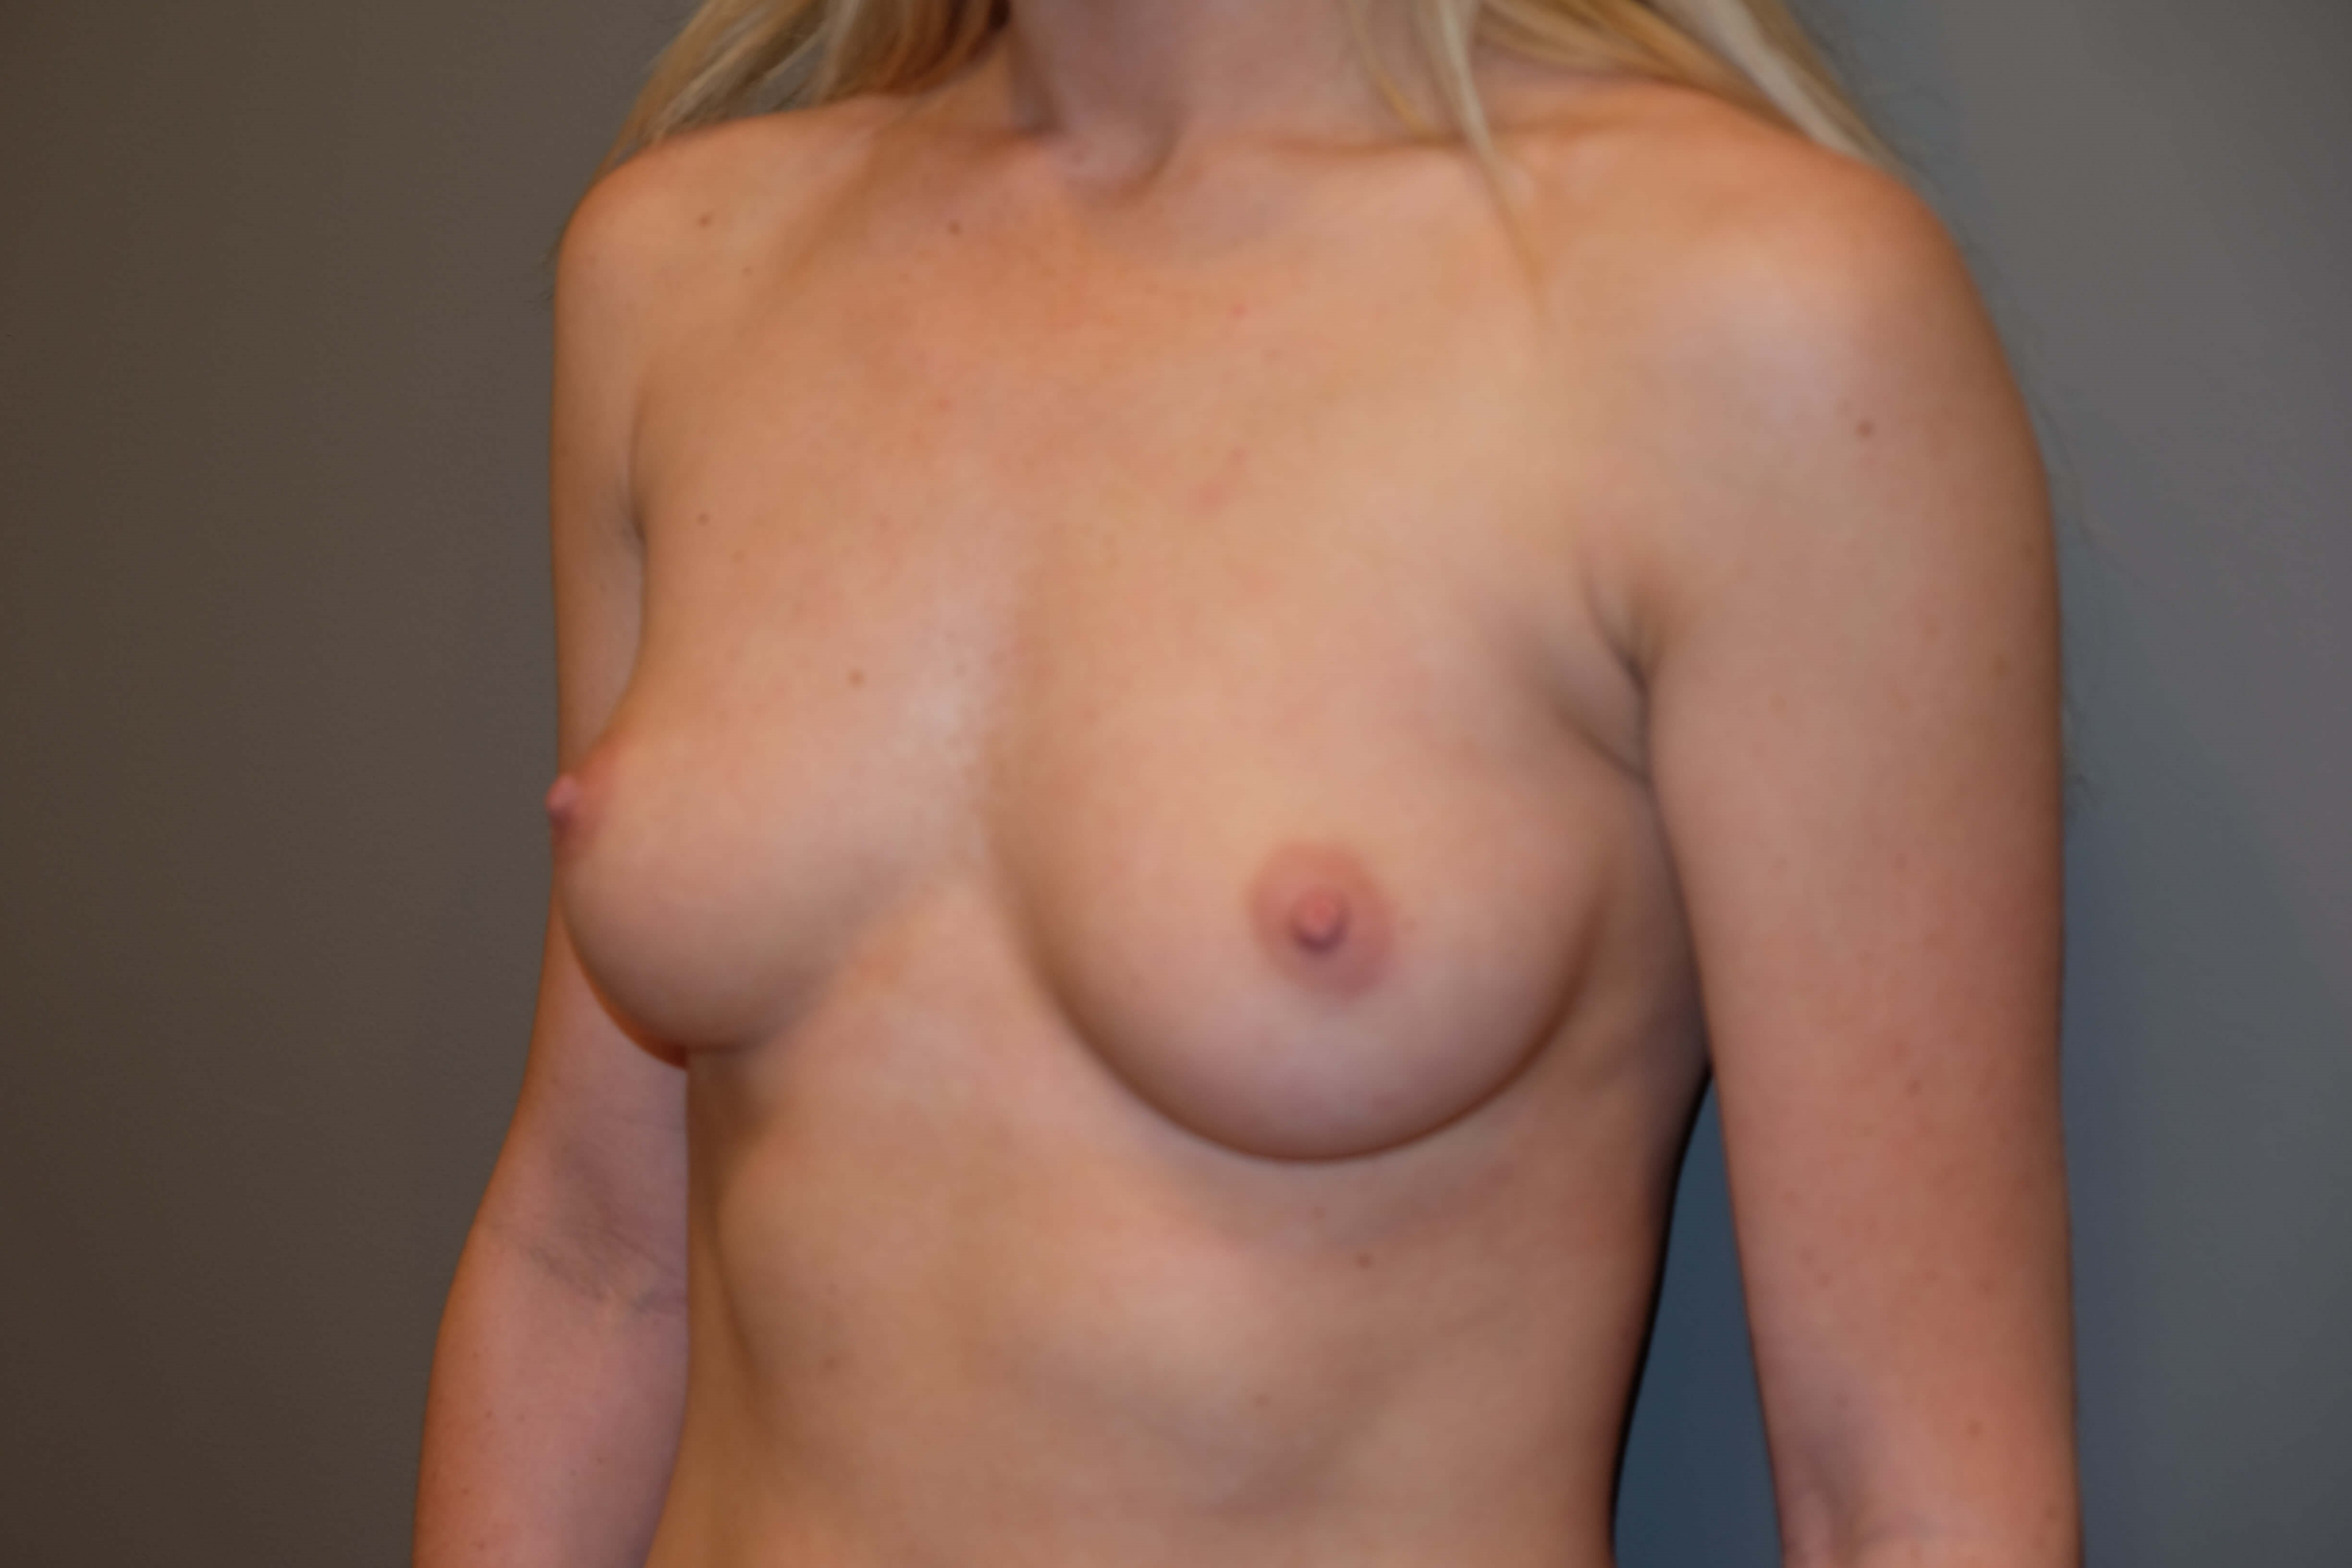 Breast Augmentation in 22 yo Before